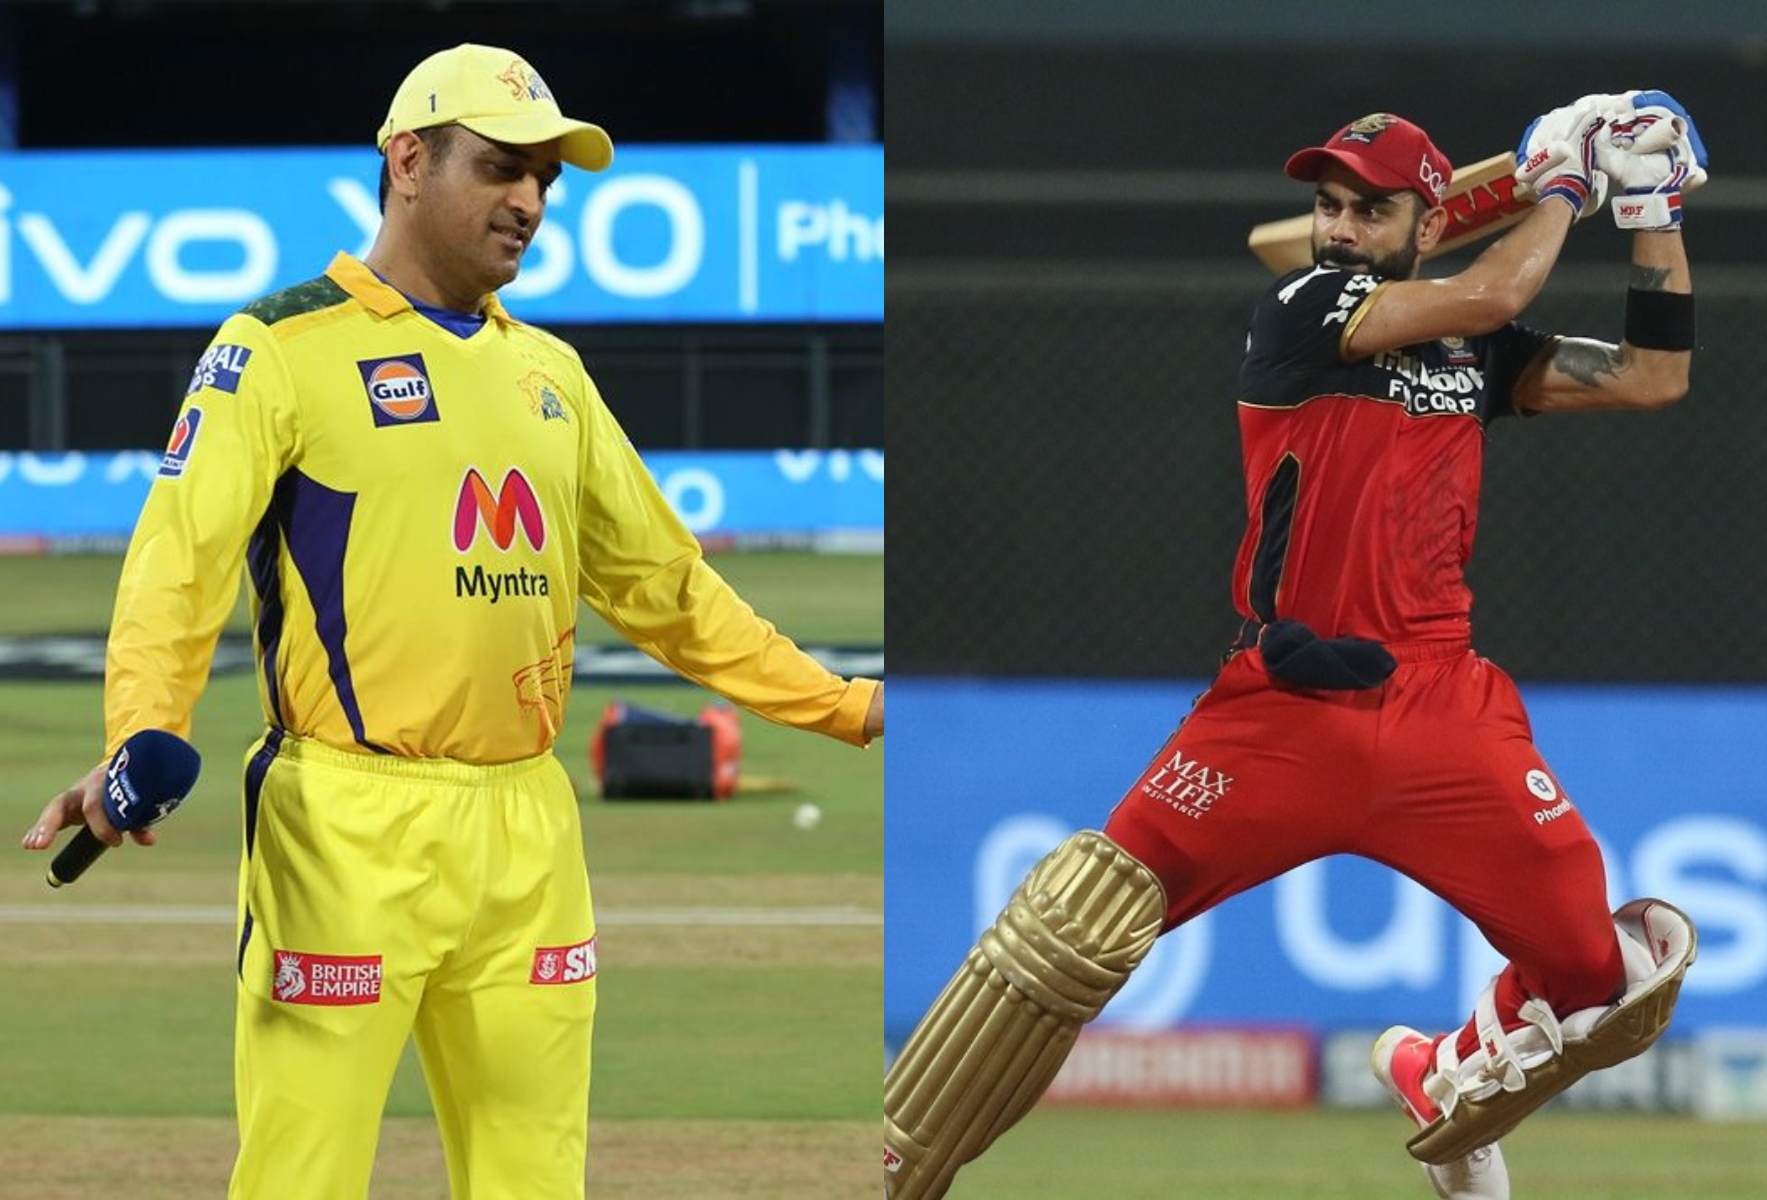 This is a clash of table toppers with no.1 RCB taking on no.2 CSK | BCCI-IPL